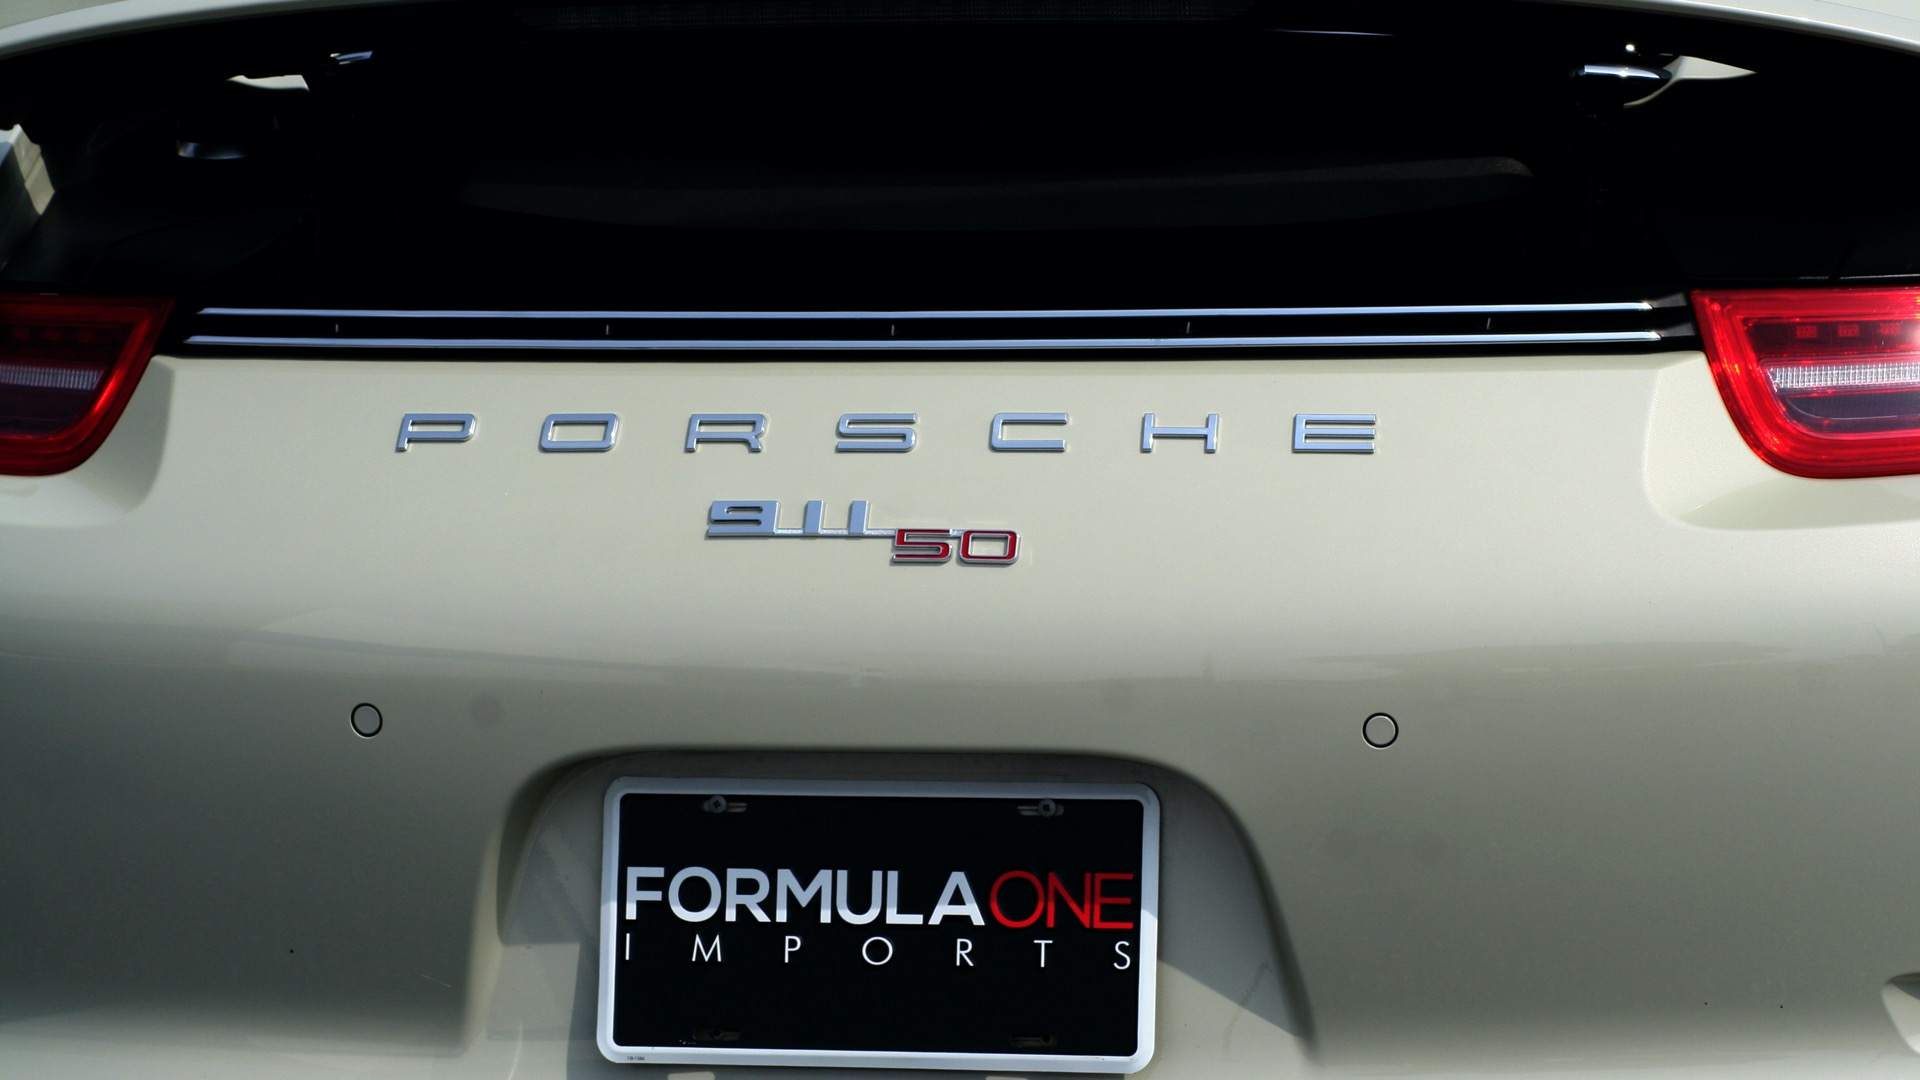 Used 2014 Porsche 911 50TH ANNIVERSARY EDITION NO. 0423 / 7-SPD MAN / NAV / BOSE for sale $118,999 at Formula One Imports in Charlotte NC 28227 83